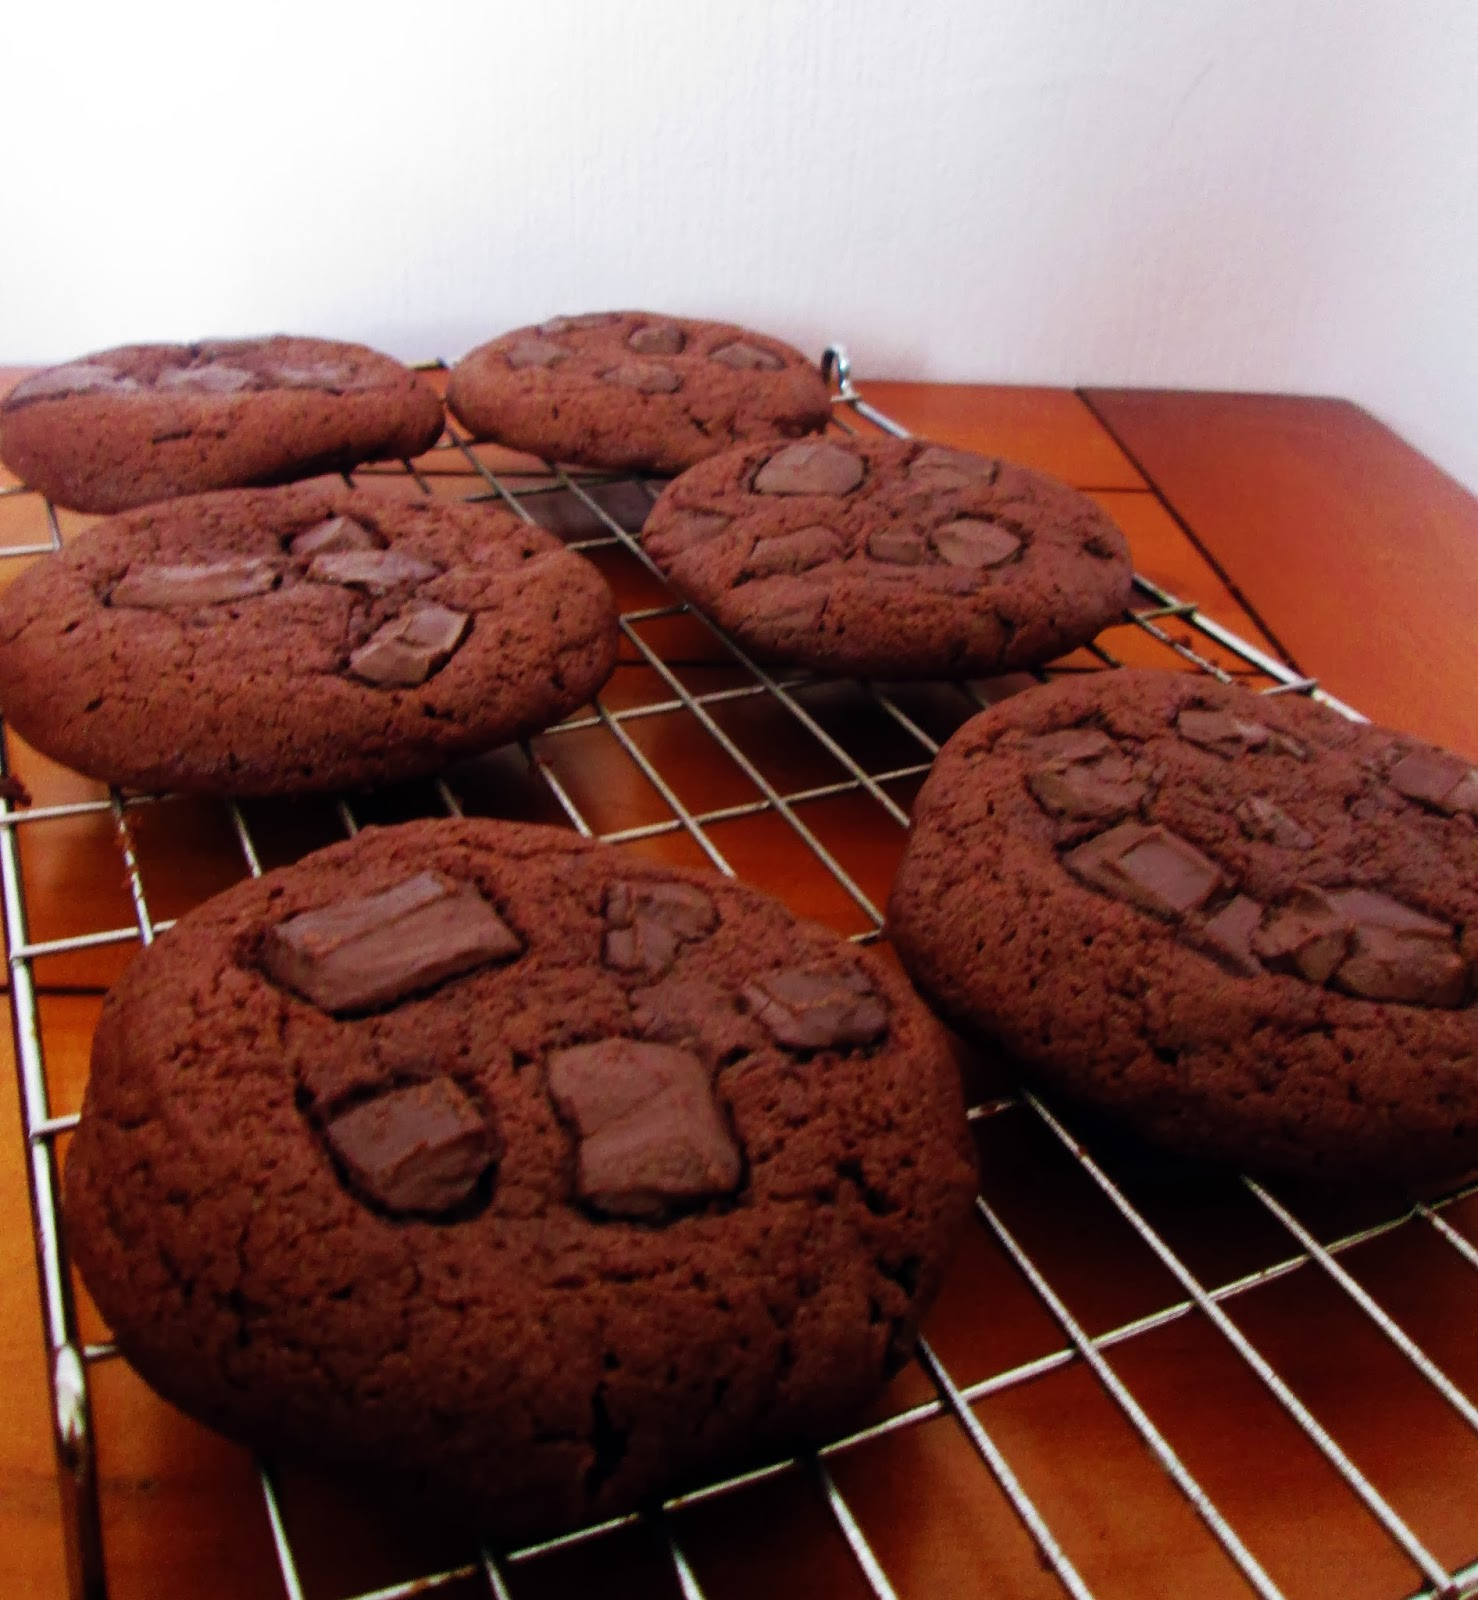 http://themessykitchenuk.blogspot.co.uk/2014/02/chocolate-chunk-cookie.html